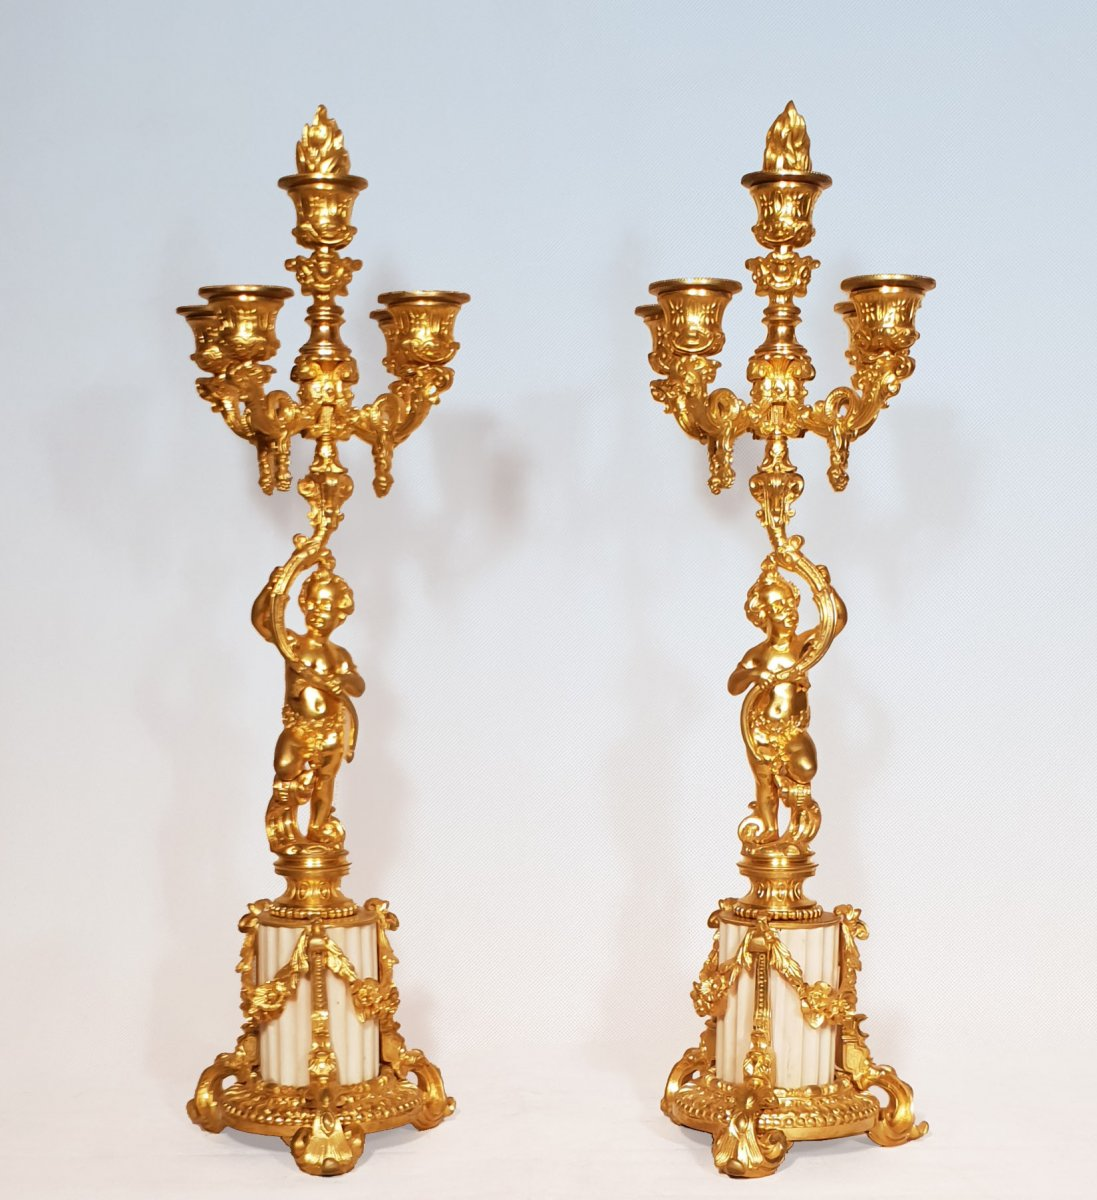 Pair Of Candelabra With Putti Gilt Bronze Ht 54 Cm